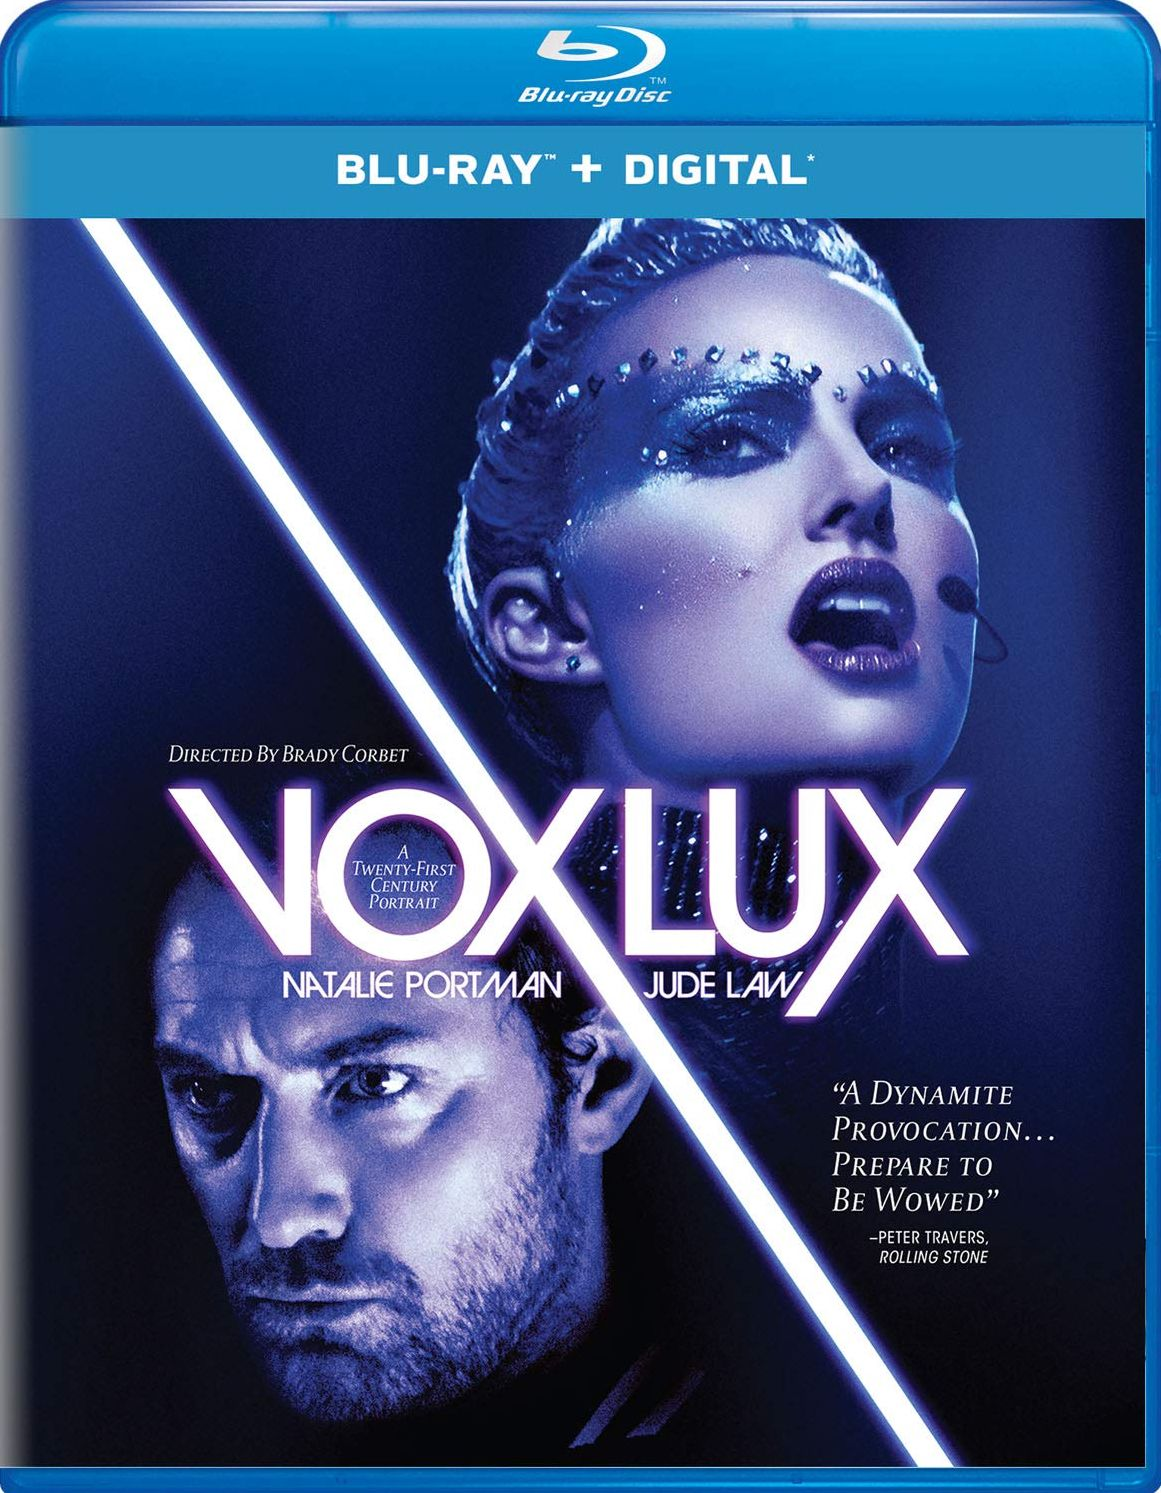 VOX LUX BLURAY (UNIVERSAL STUDIOS) Video on demand, Vox